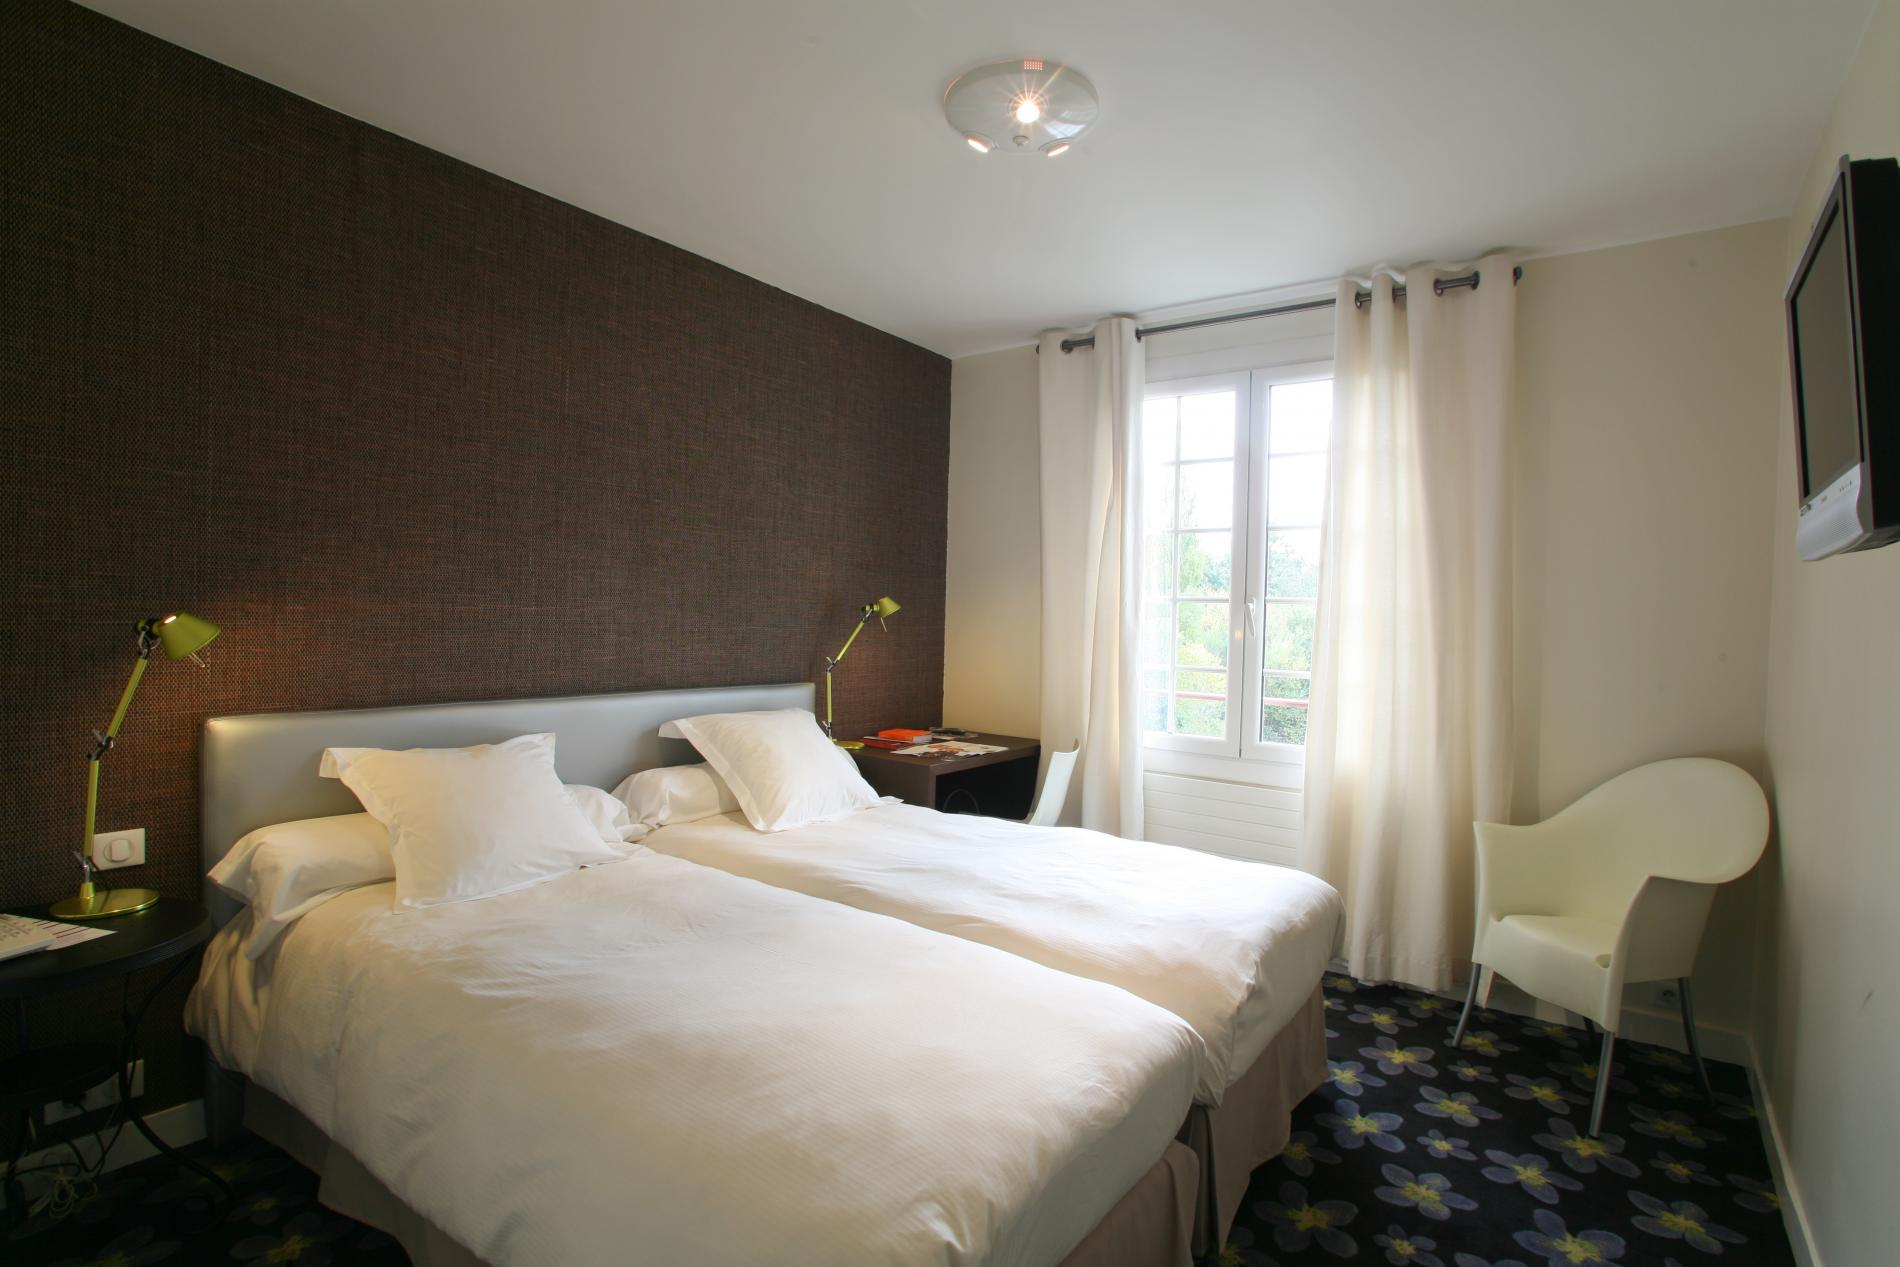 HOTEL DU MOULIN CHAMBRE SIMPLE